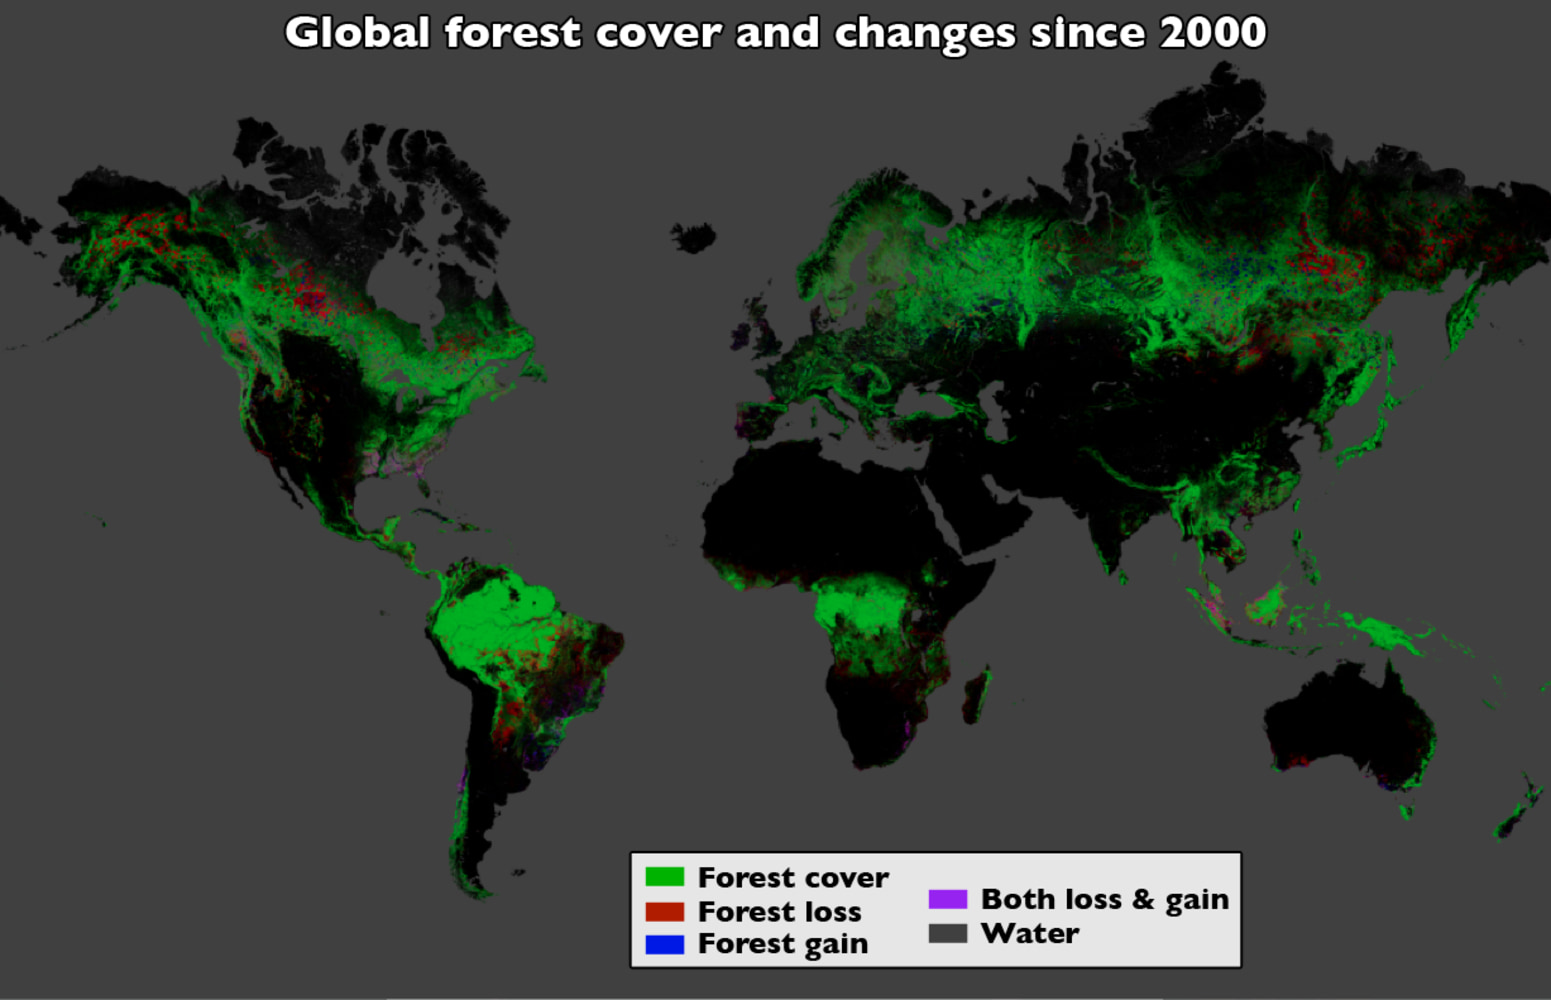 Forests disappearing since 2000? Google cloud maps global ... on oracle cloud, private cloud, office 365 cloud, storing information on the cloud, vmware cloud, cyber security cloud, internet cloud, openstack cloud, web cloud, to the cloud, salesforce cloud, big data and cloud, saas paas iaas cloud, amazon cloud, twilio cloud, vzw cloud, softlayer cloud, lifesize cloud, business cloud, microsoft cloud,